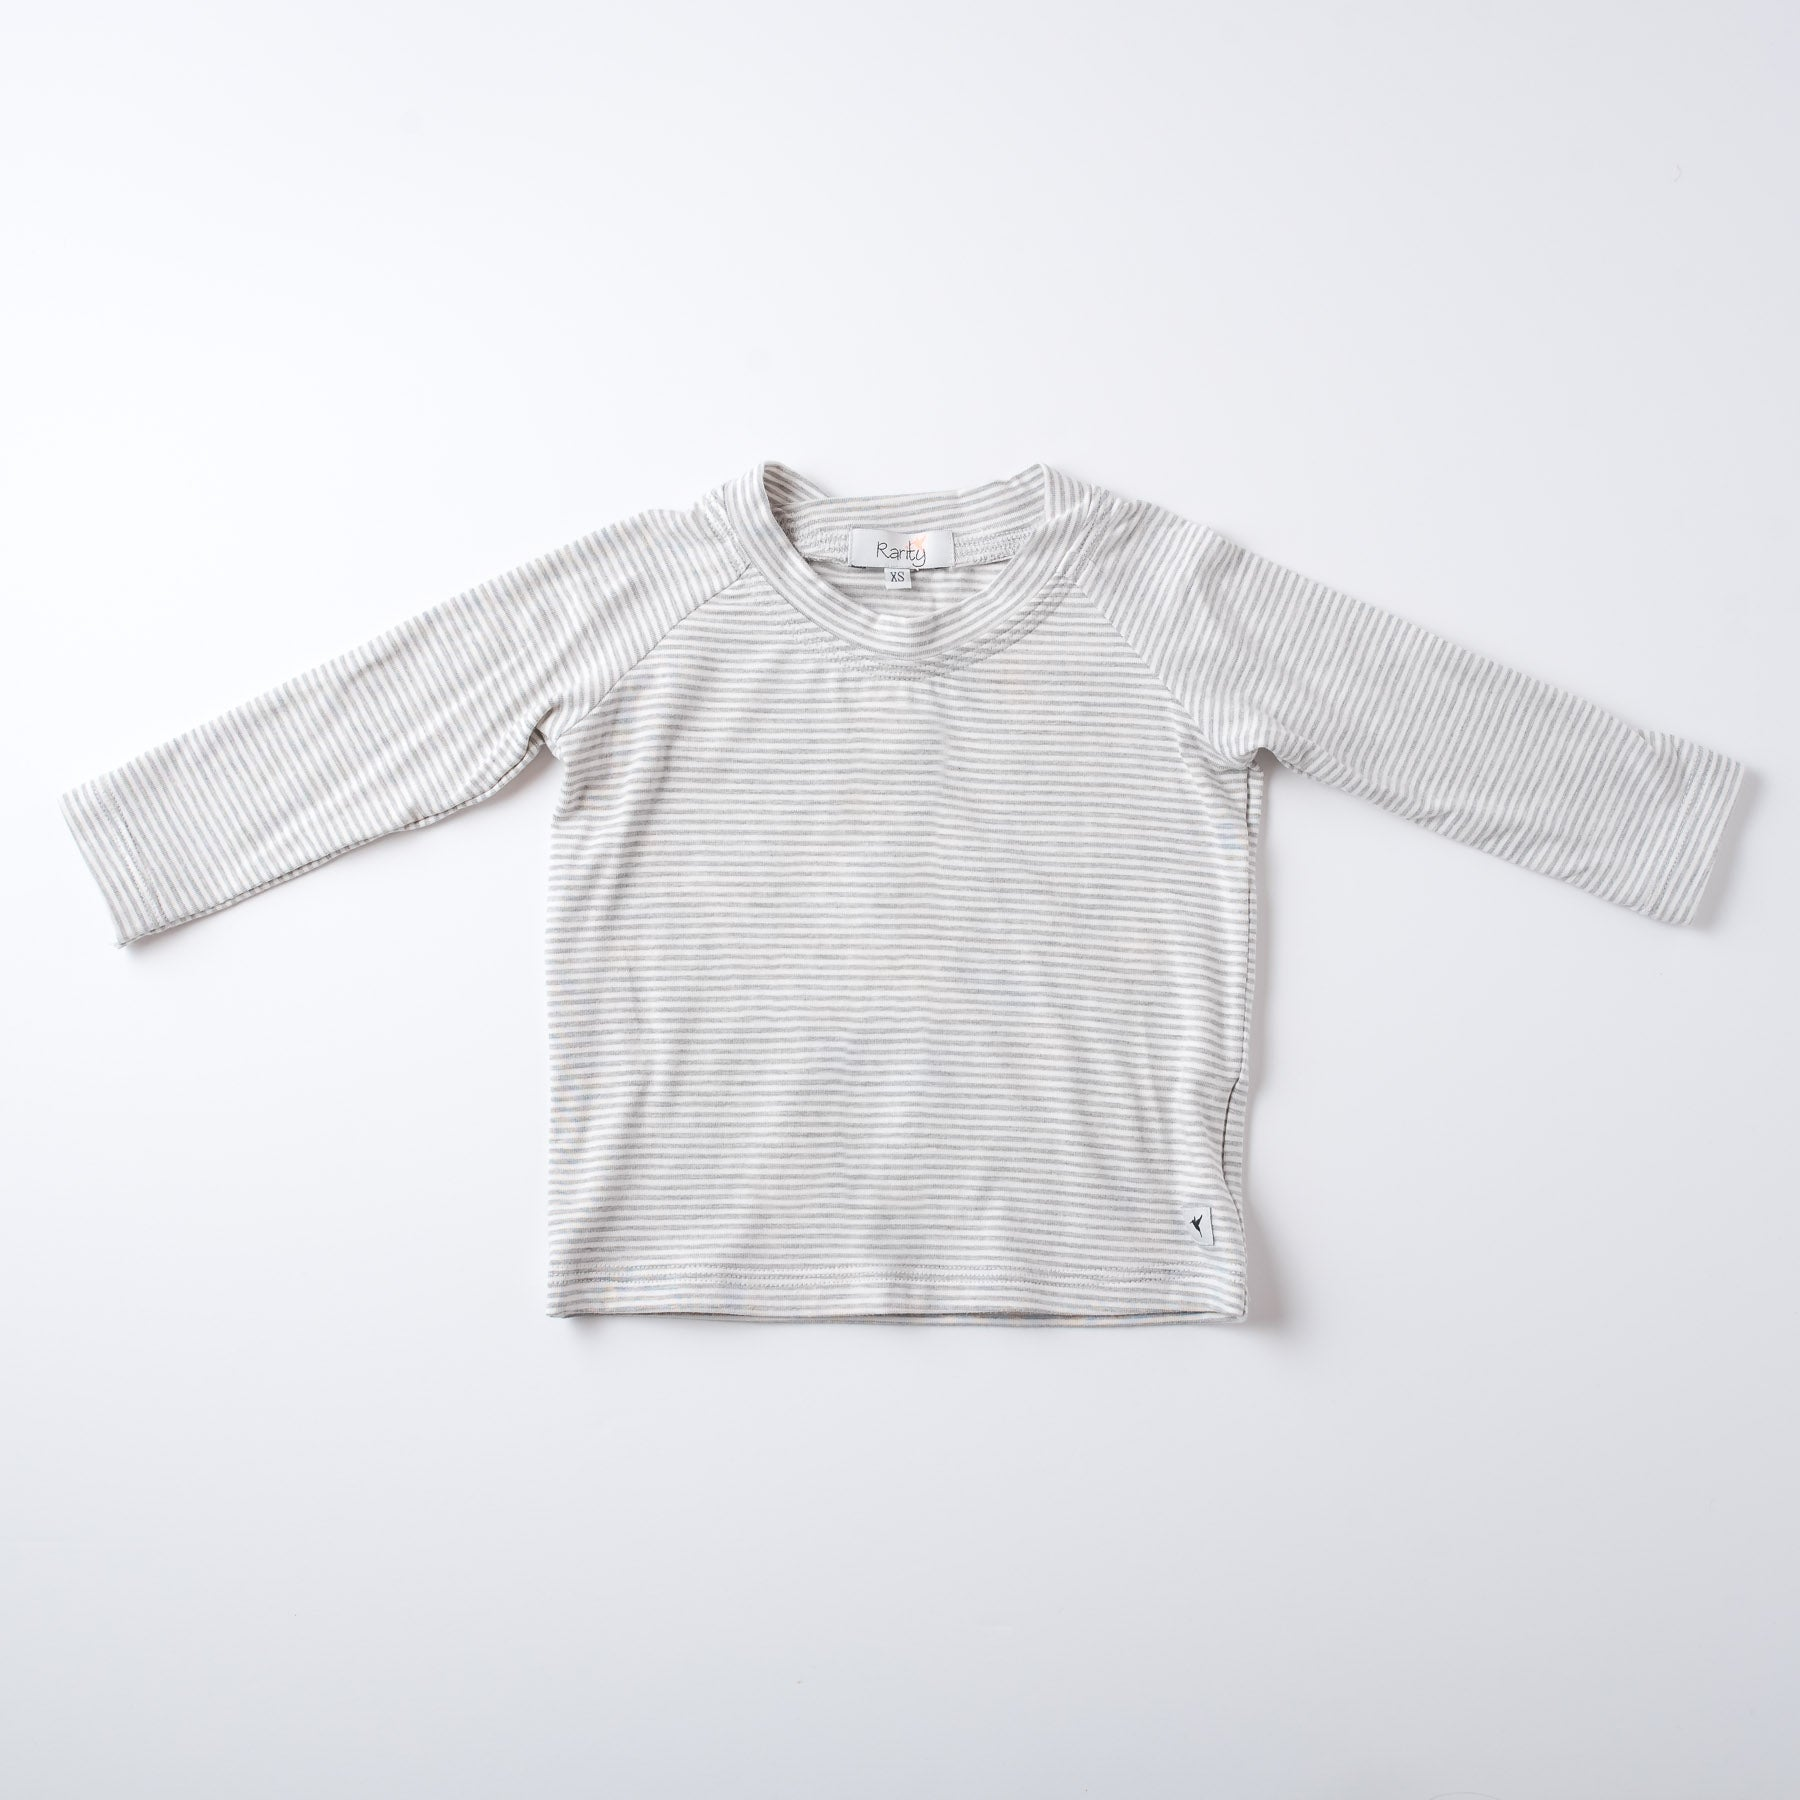 Long Sleeved organic cotton T-shirt in grey & white stripe